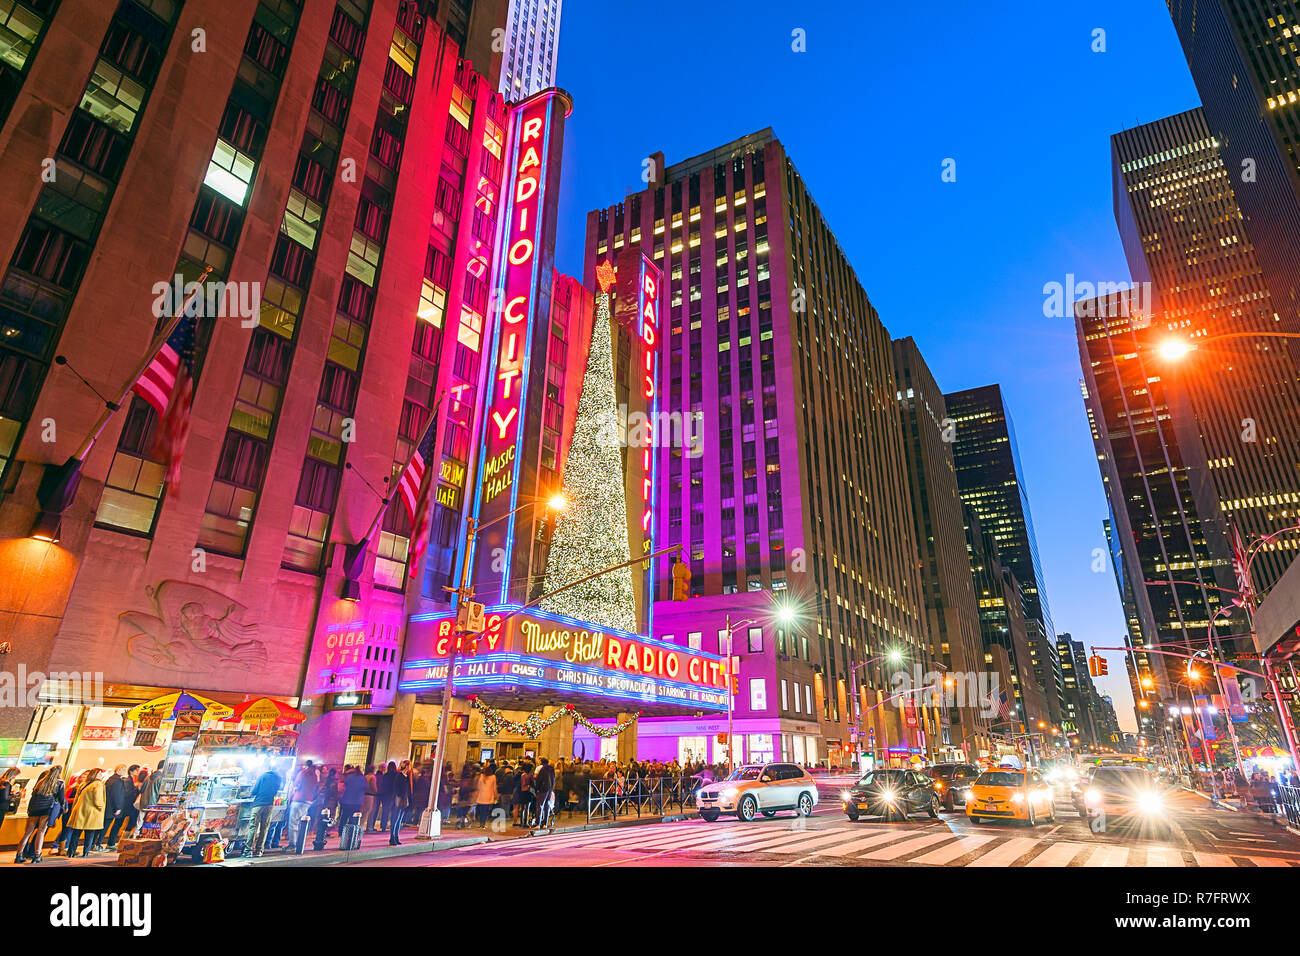 Radio City Music Hall Christmas Season Rockefeller Center Avenue of the Americas New York City - Stock Image